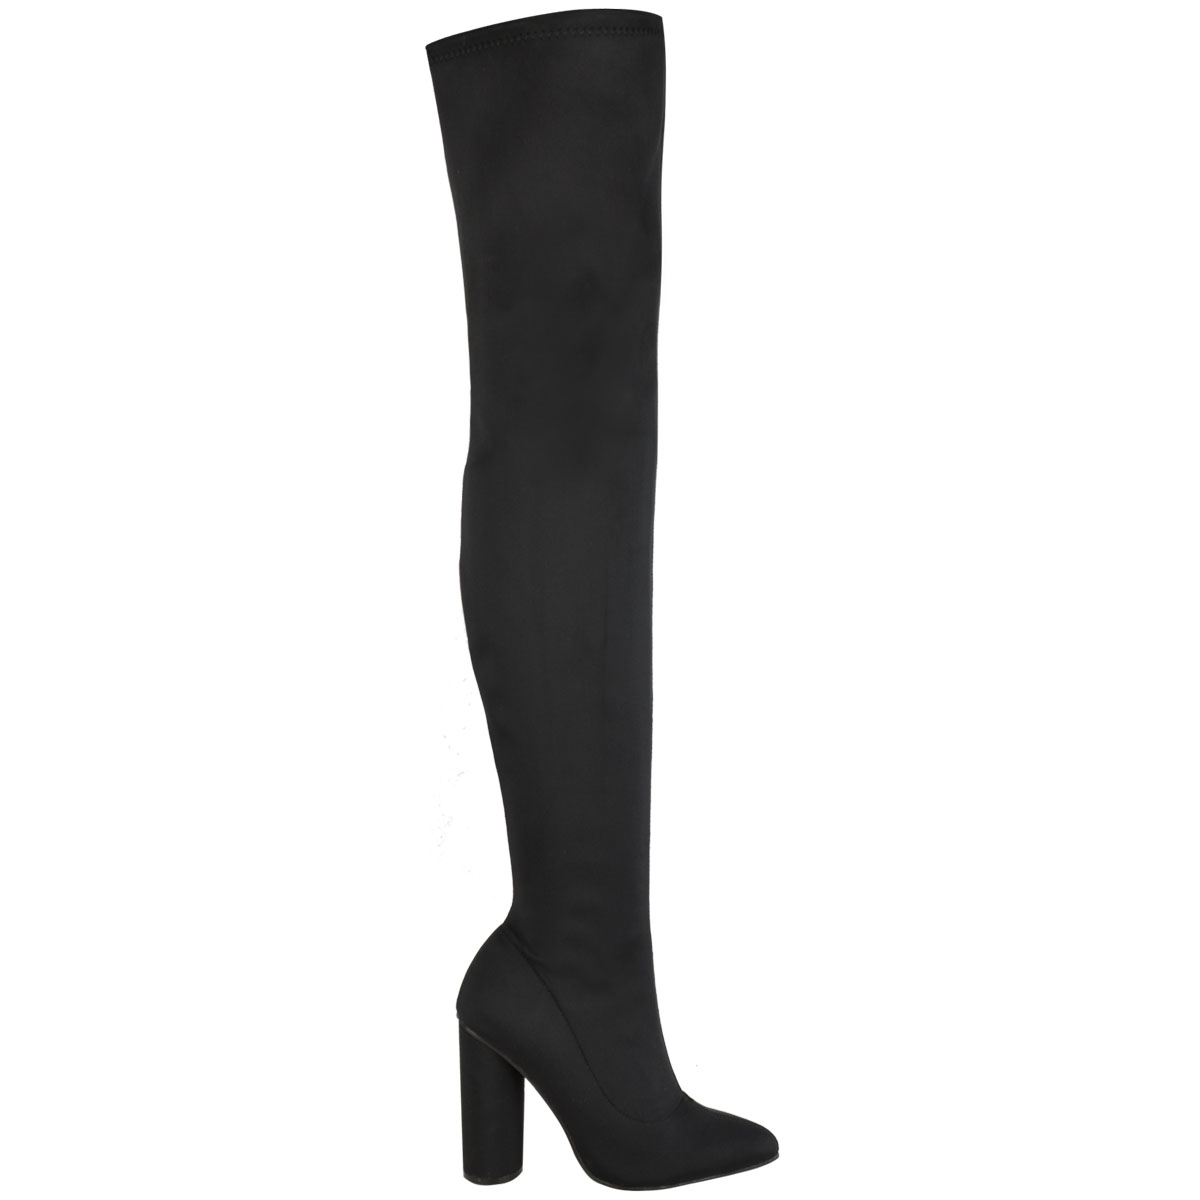 Womens-Over-The-Knee-Thigh-Boots-High-Block-Heel-Stretch-Zip-Up-Pointed-Toe-Size